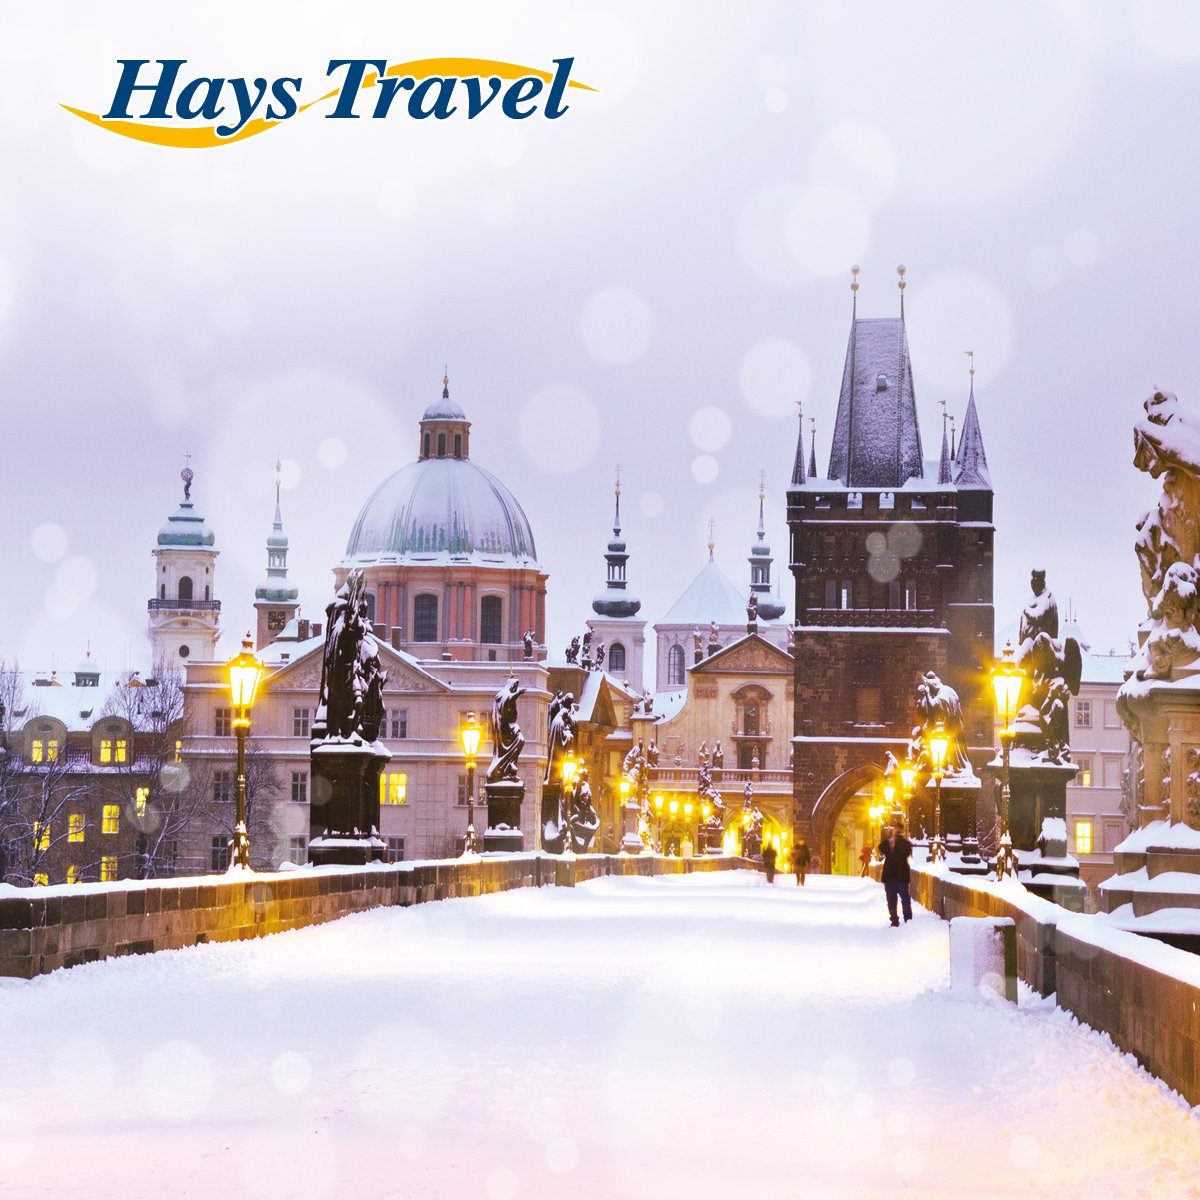 hays travel - photo #30